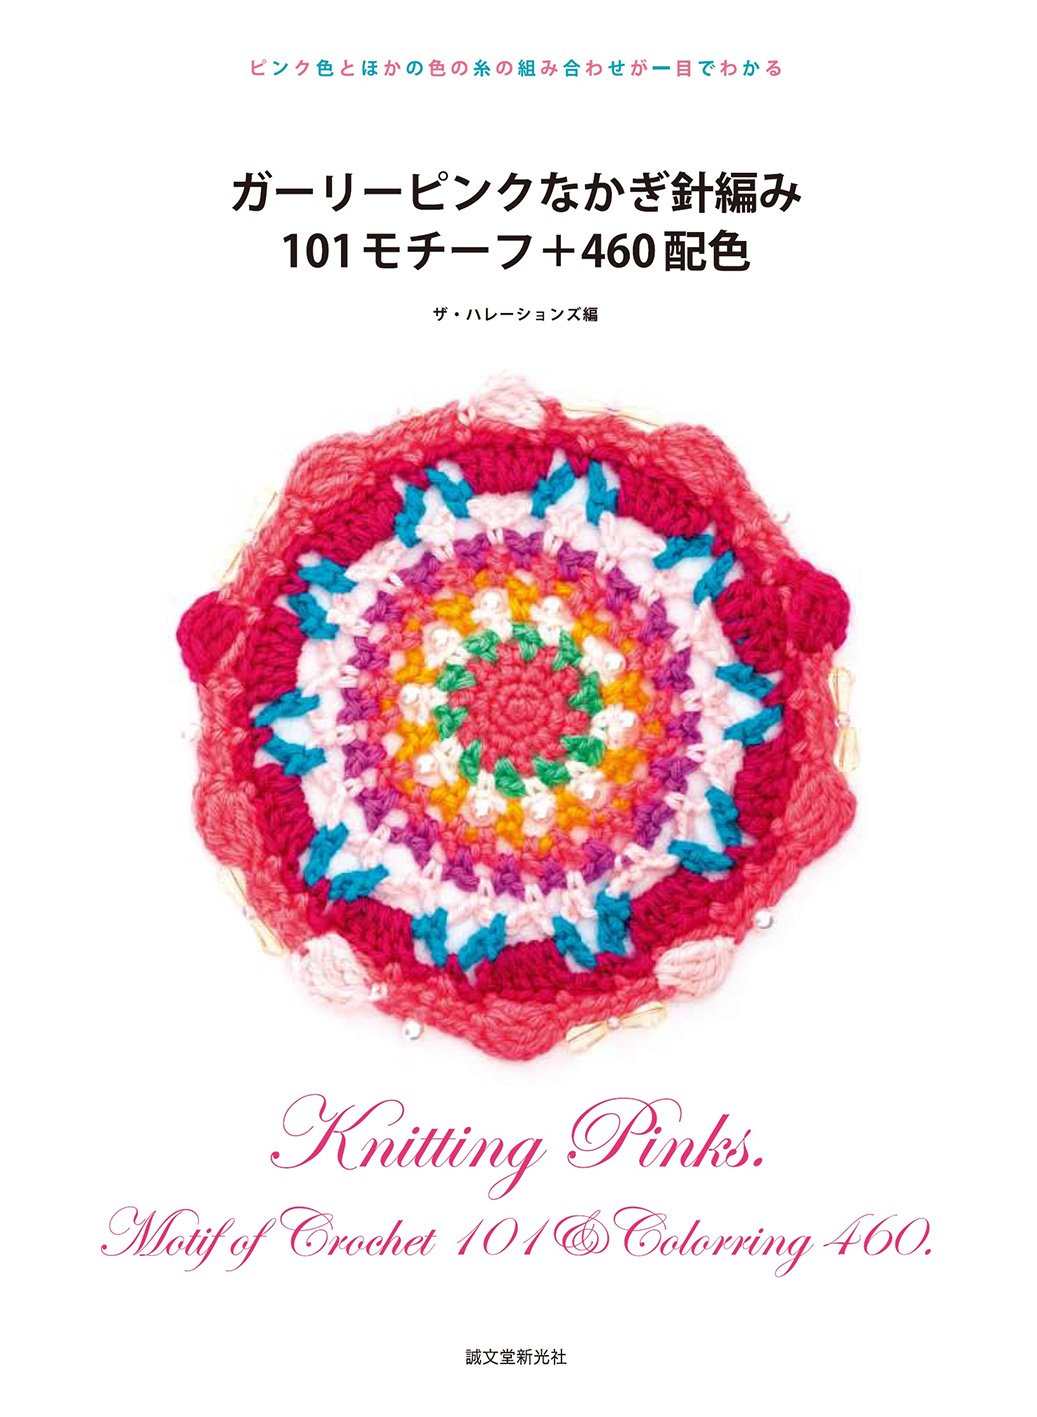 Crochet motif 101 + 460 girly pink color scheme